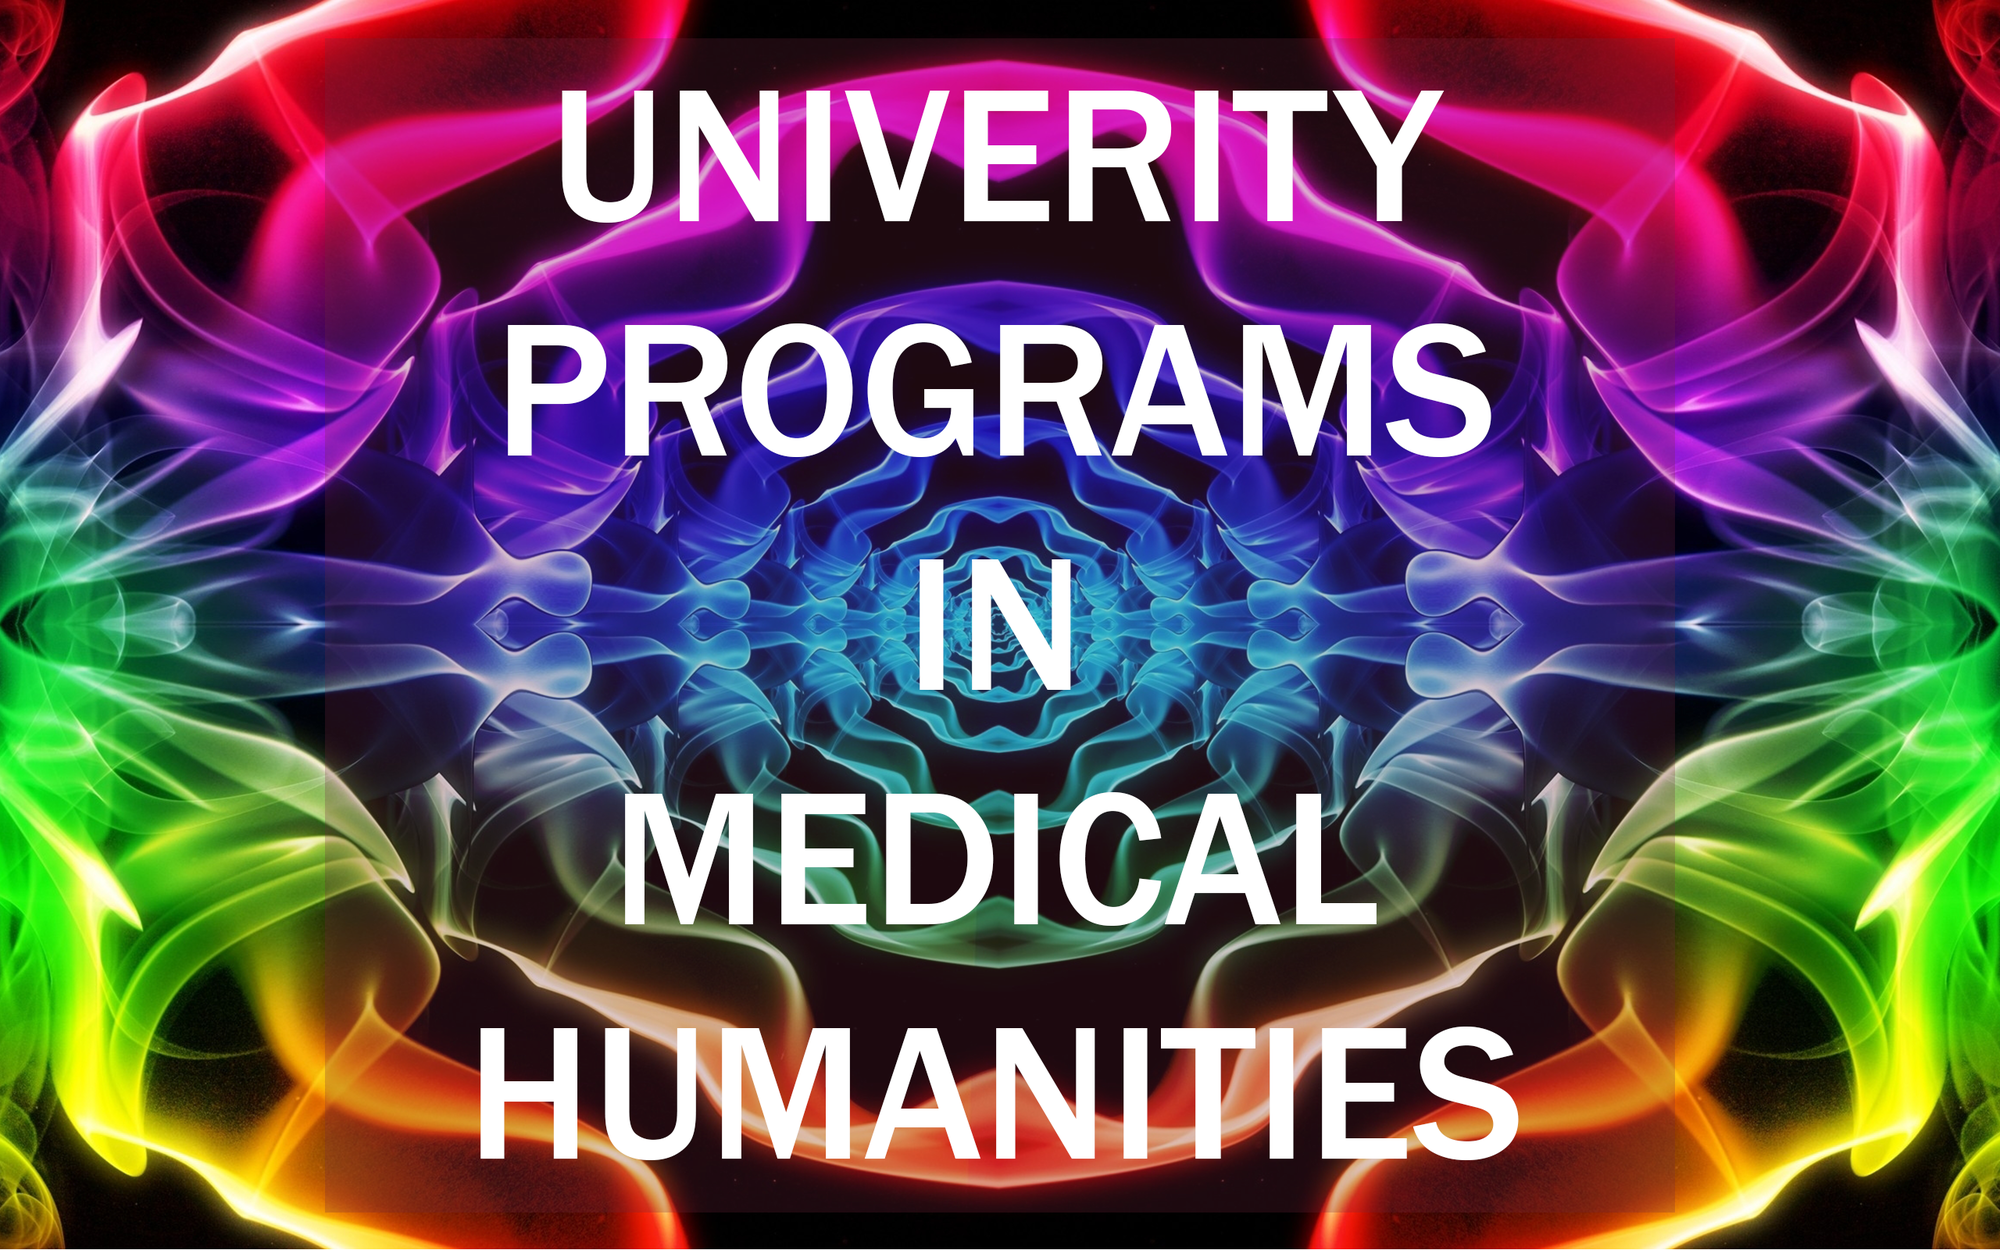 University programs in medical humanities